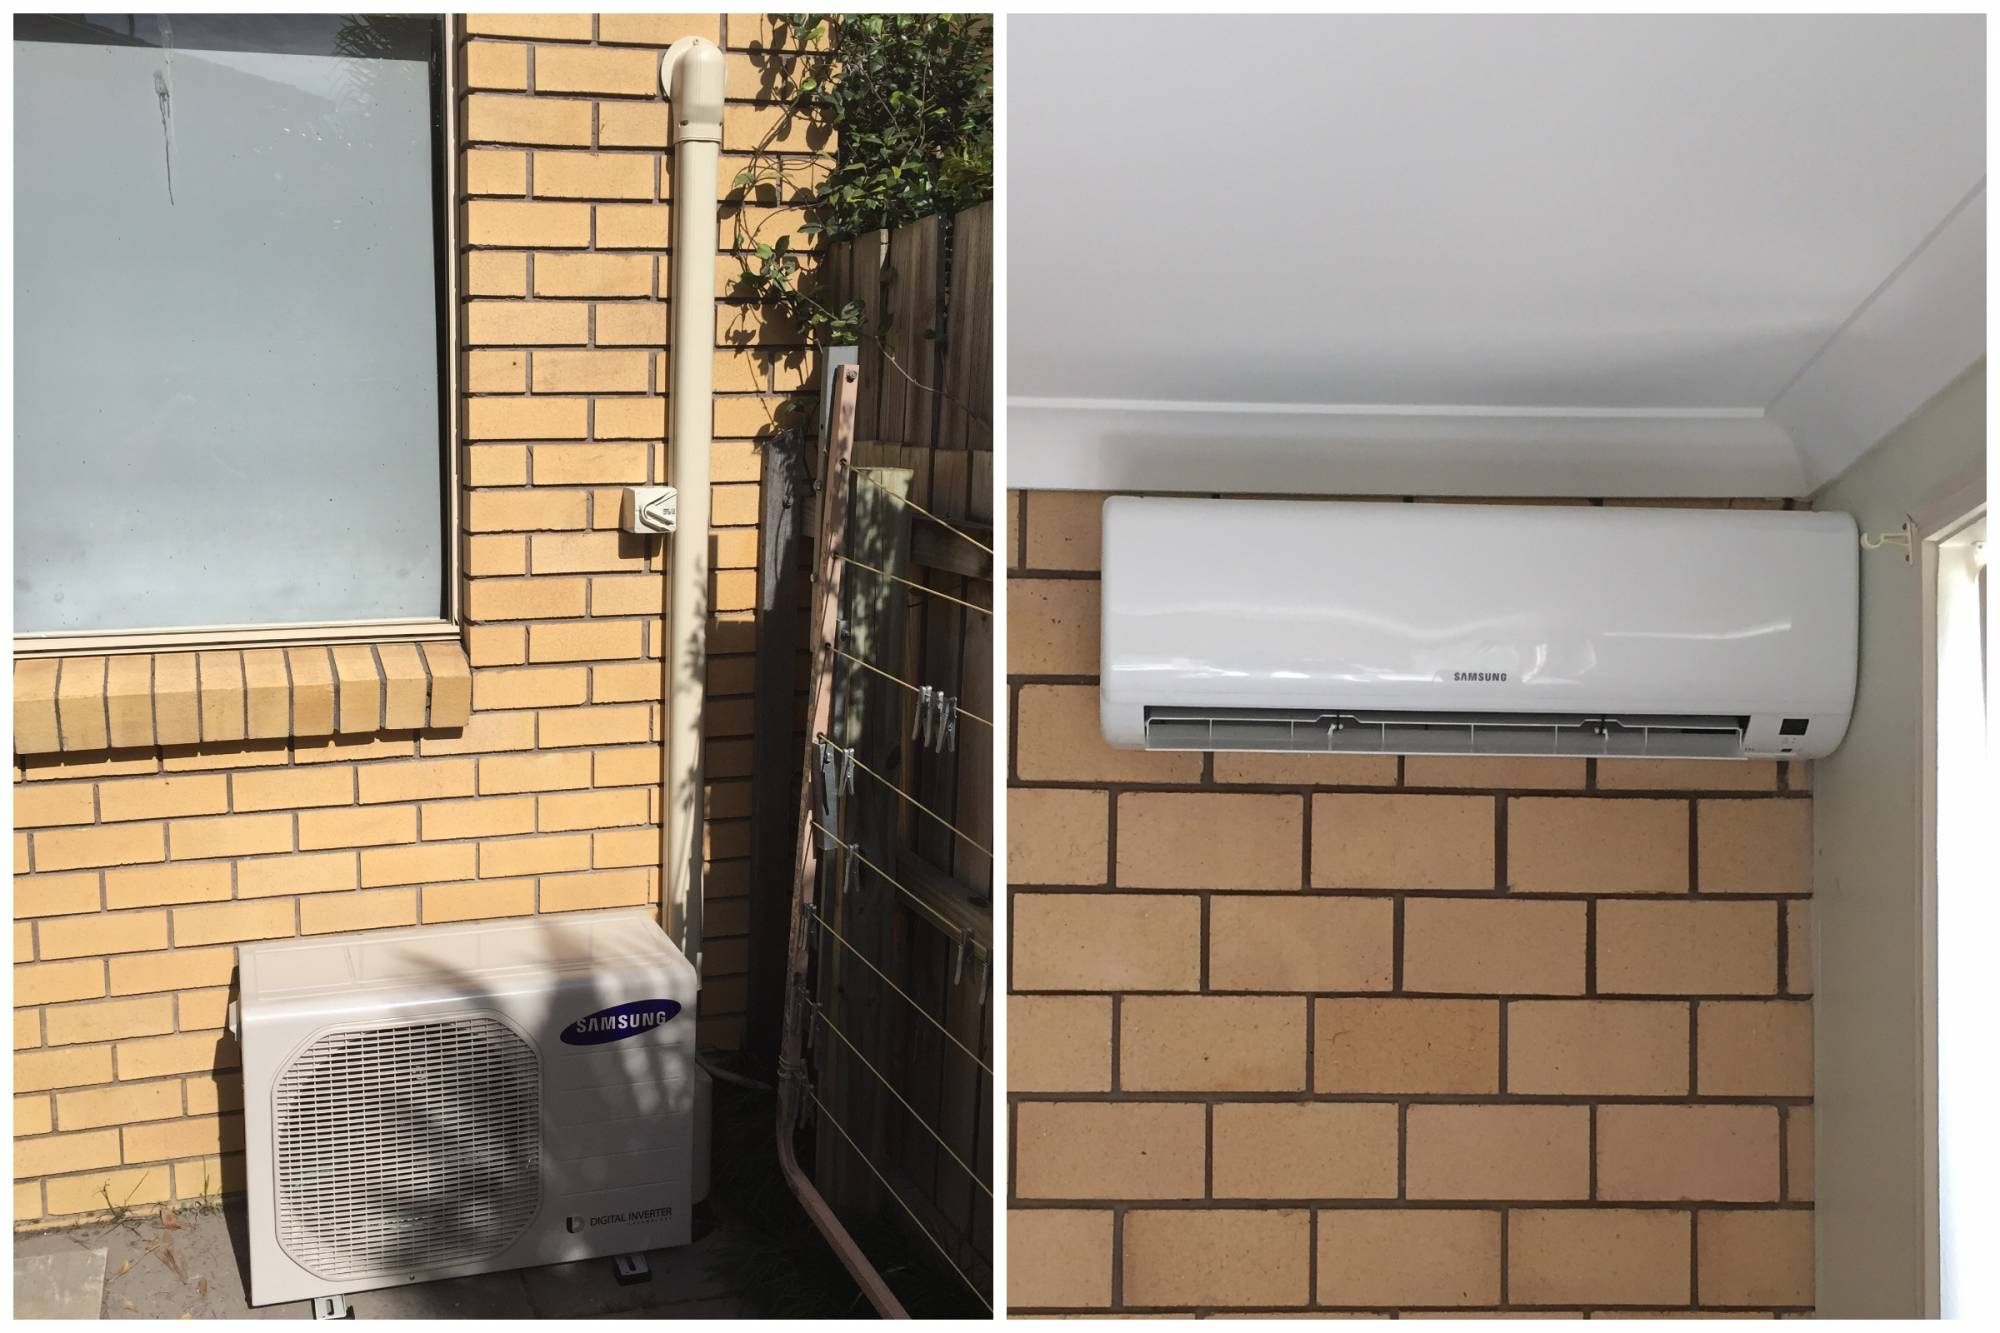 #AC701F Air Conditioning Gold Coast Best 8113 Air Conditioner Installer Gold Coast photos with 2000x1333 px on helpvideos.info - Air Conditioners, Air Coolers and more